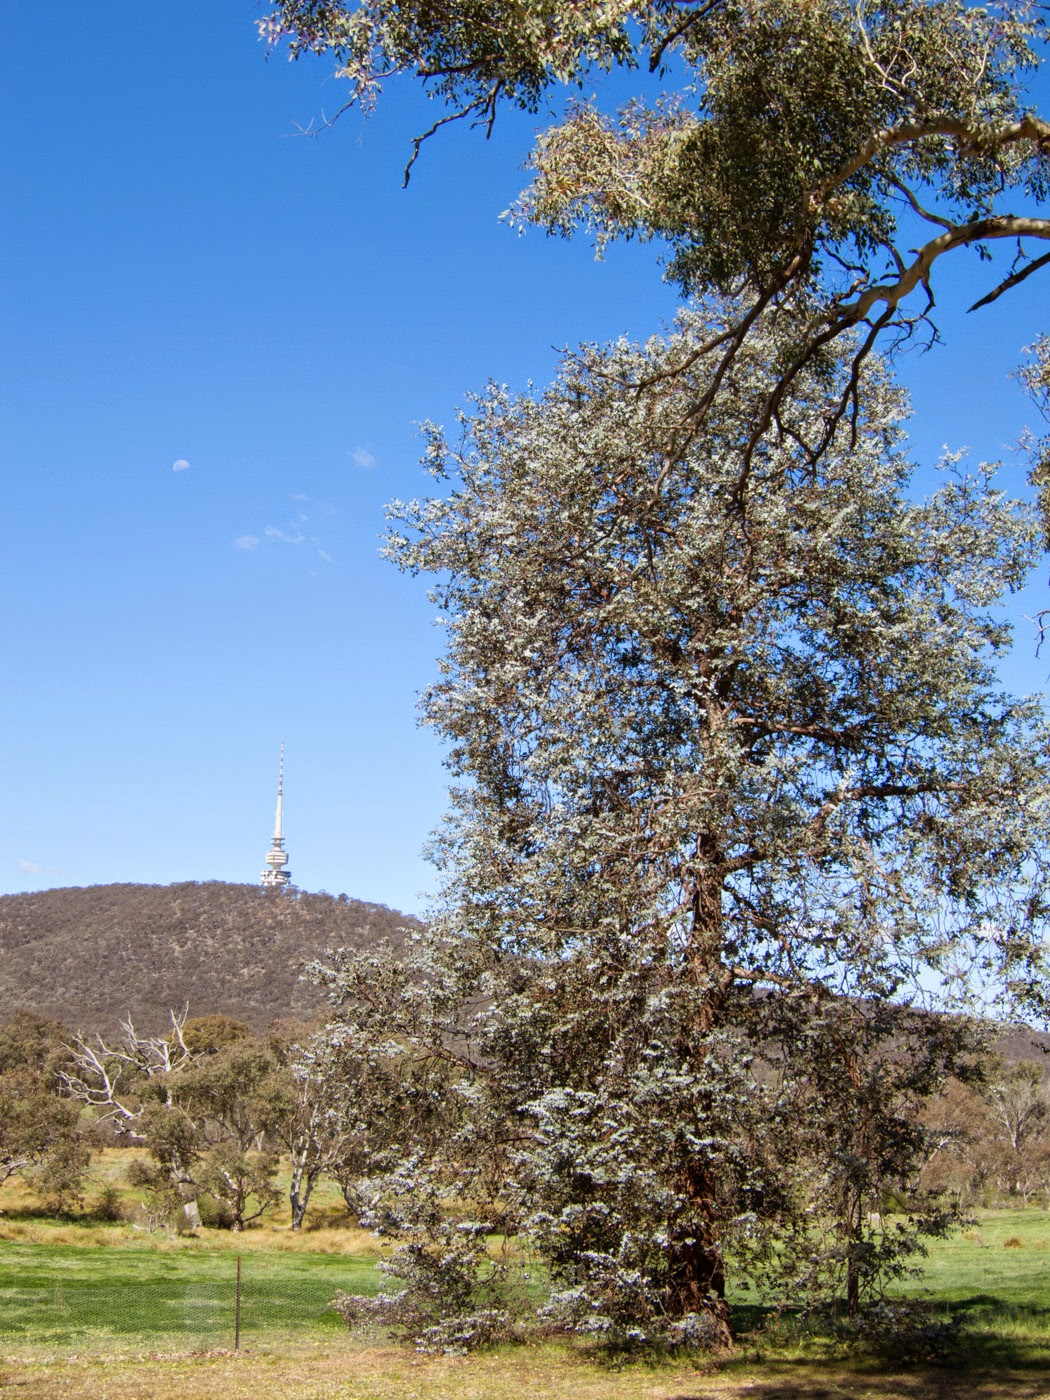 Tim Macauley, you won't see this at MoMA, photographic art, emerging photographic artist, Canberra, ACT, gumtree, Telstra Tower, Australia, Australian, objective, graphic, similarity, series,  landscape, the light monkey collective